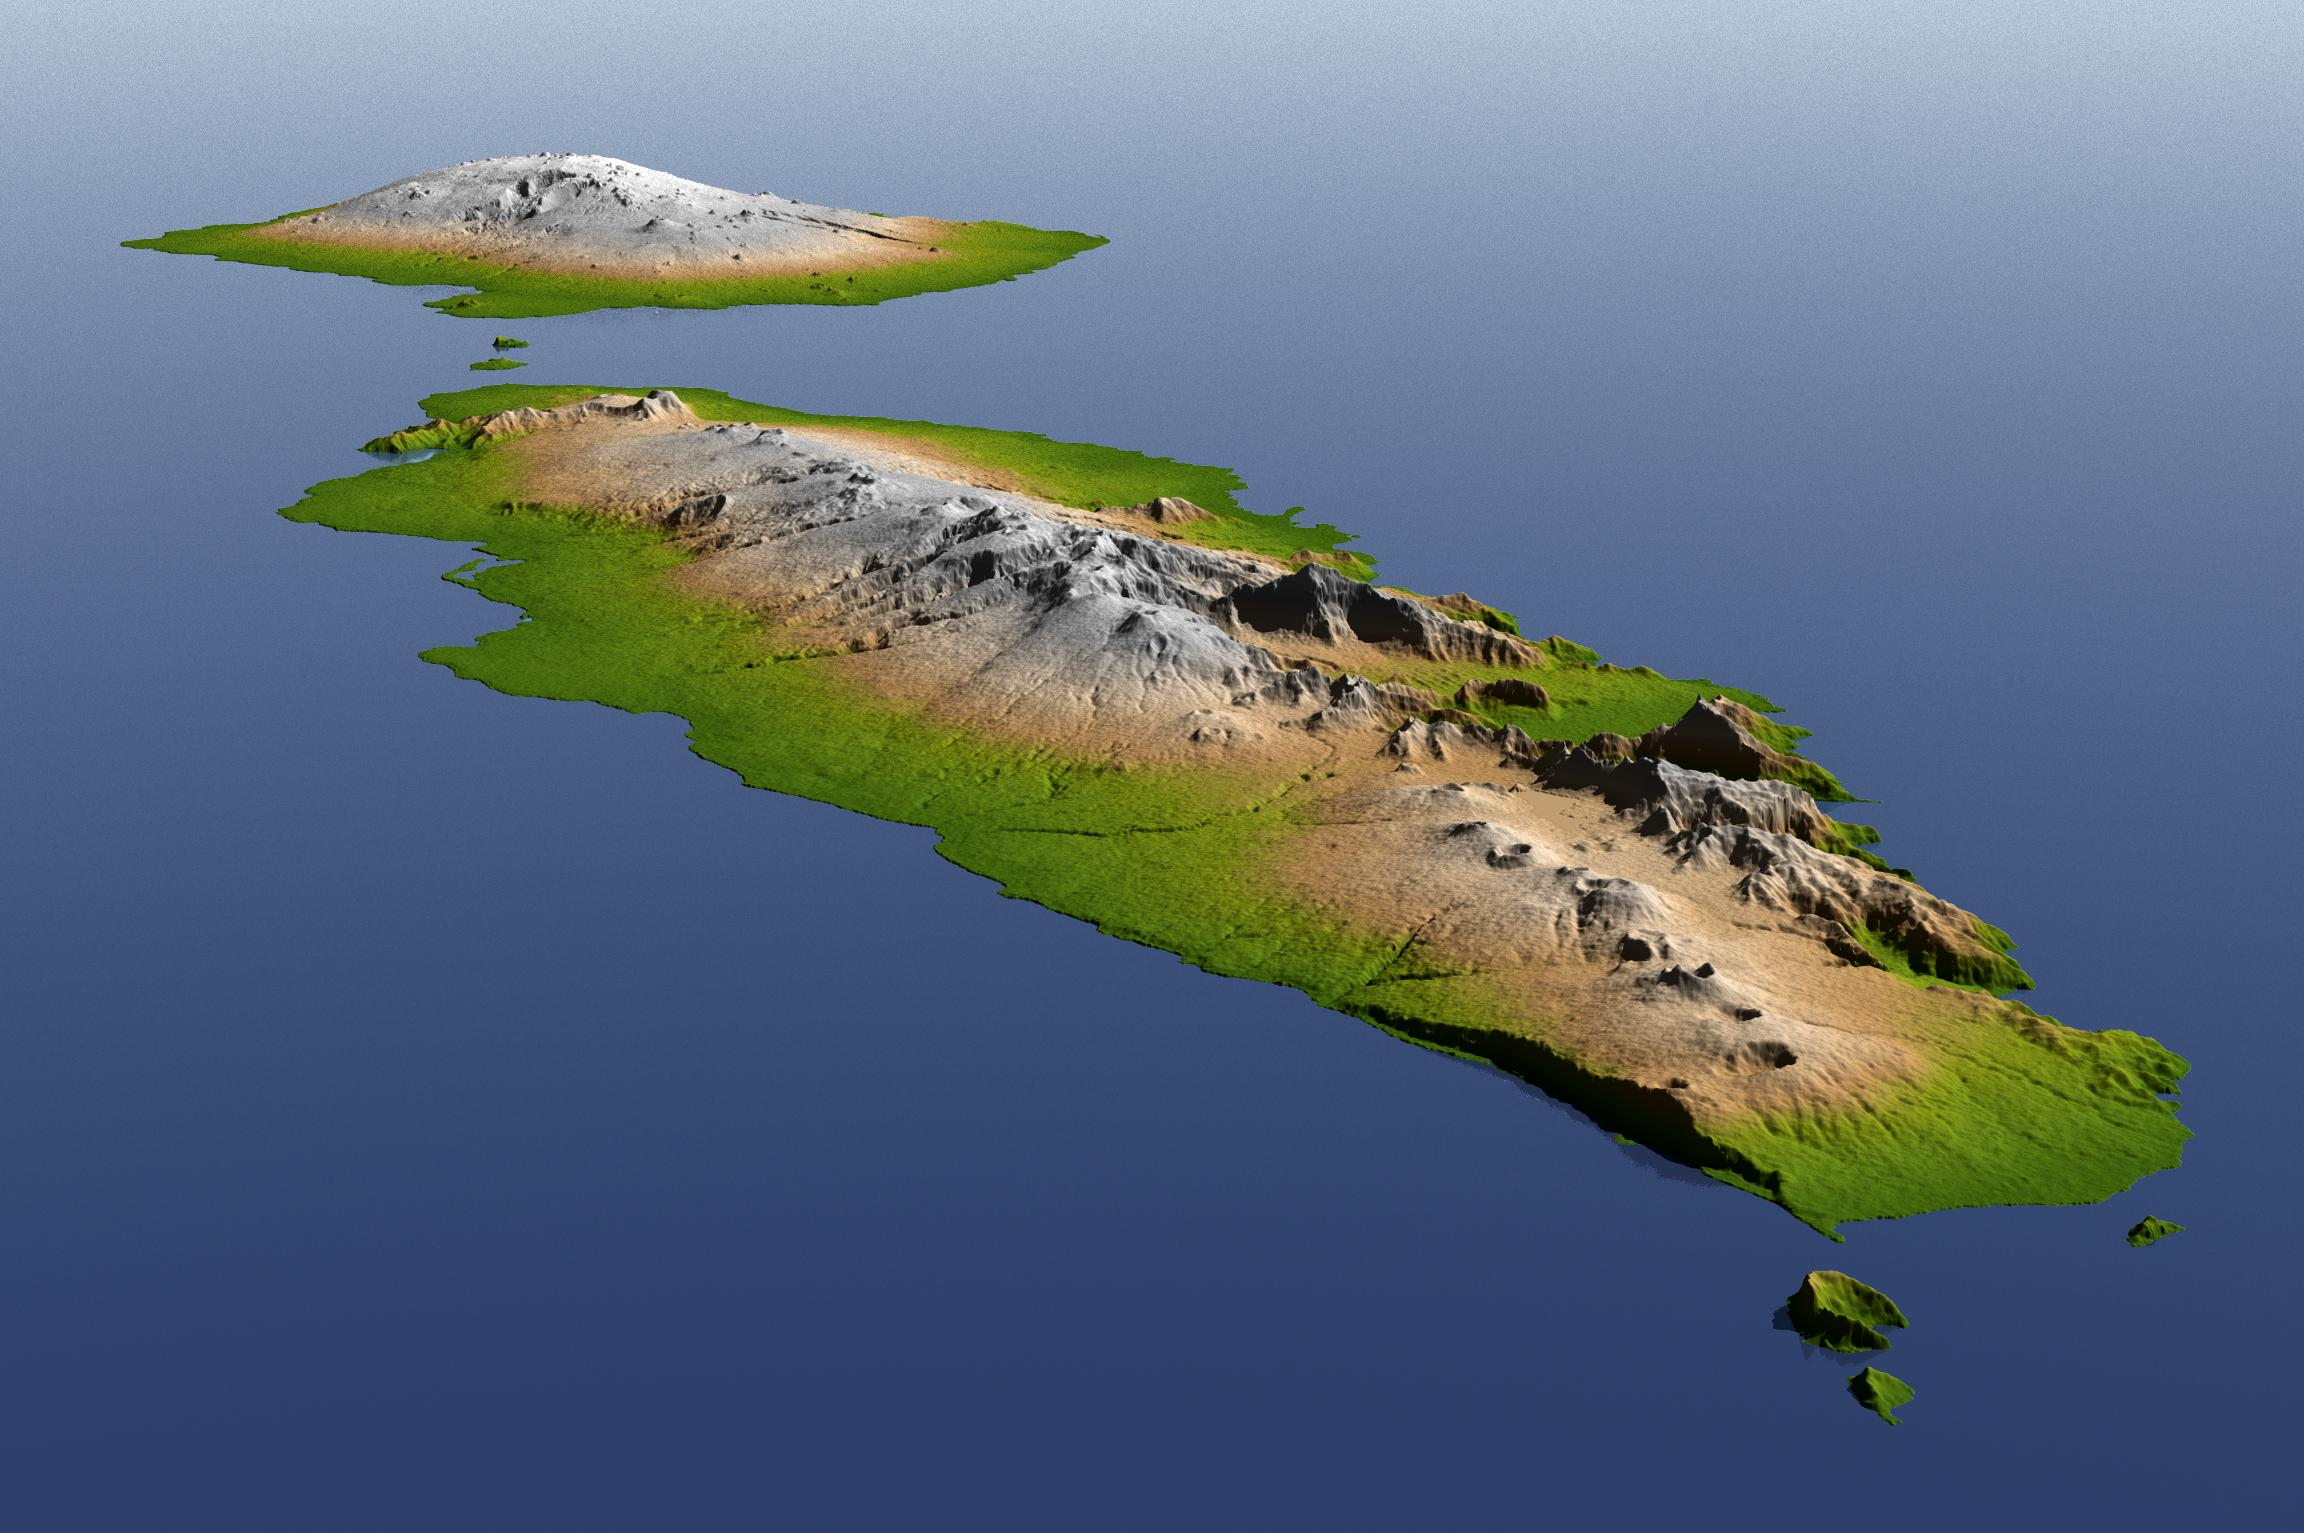 The topography of Savai'i (background) and Upolu (foreground), the two large islands of the Independent State of Samoa, is well shown in this color-coded perspective view generated with digital elevation data from the Shuttle Radar Topography Mission (SRTM.)  On September 29, 2009, a tsunami generated by a major undersea earthquake located about 200 kilometers (120 miles) south of Samoa inundated villages on the southern coast of the islands with an ocean surge perhaps more than 3 meters (10 feet) deep. It also impacted the more heavily populated northern coasts with a surge measured at nearly 1.5 meters (4 feet) at the capital city Apia (on Upolu). Image by     NASA/JPL/NGA